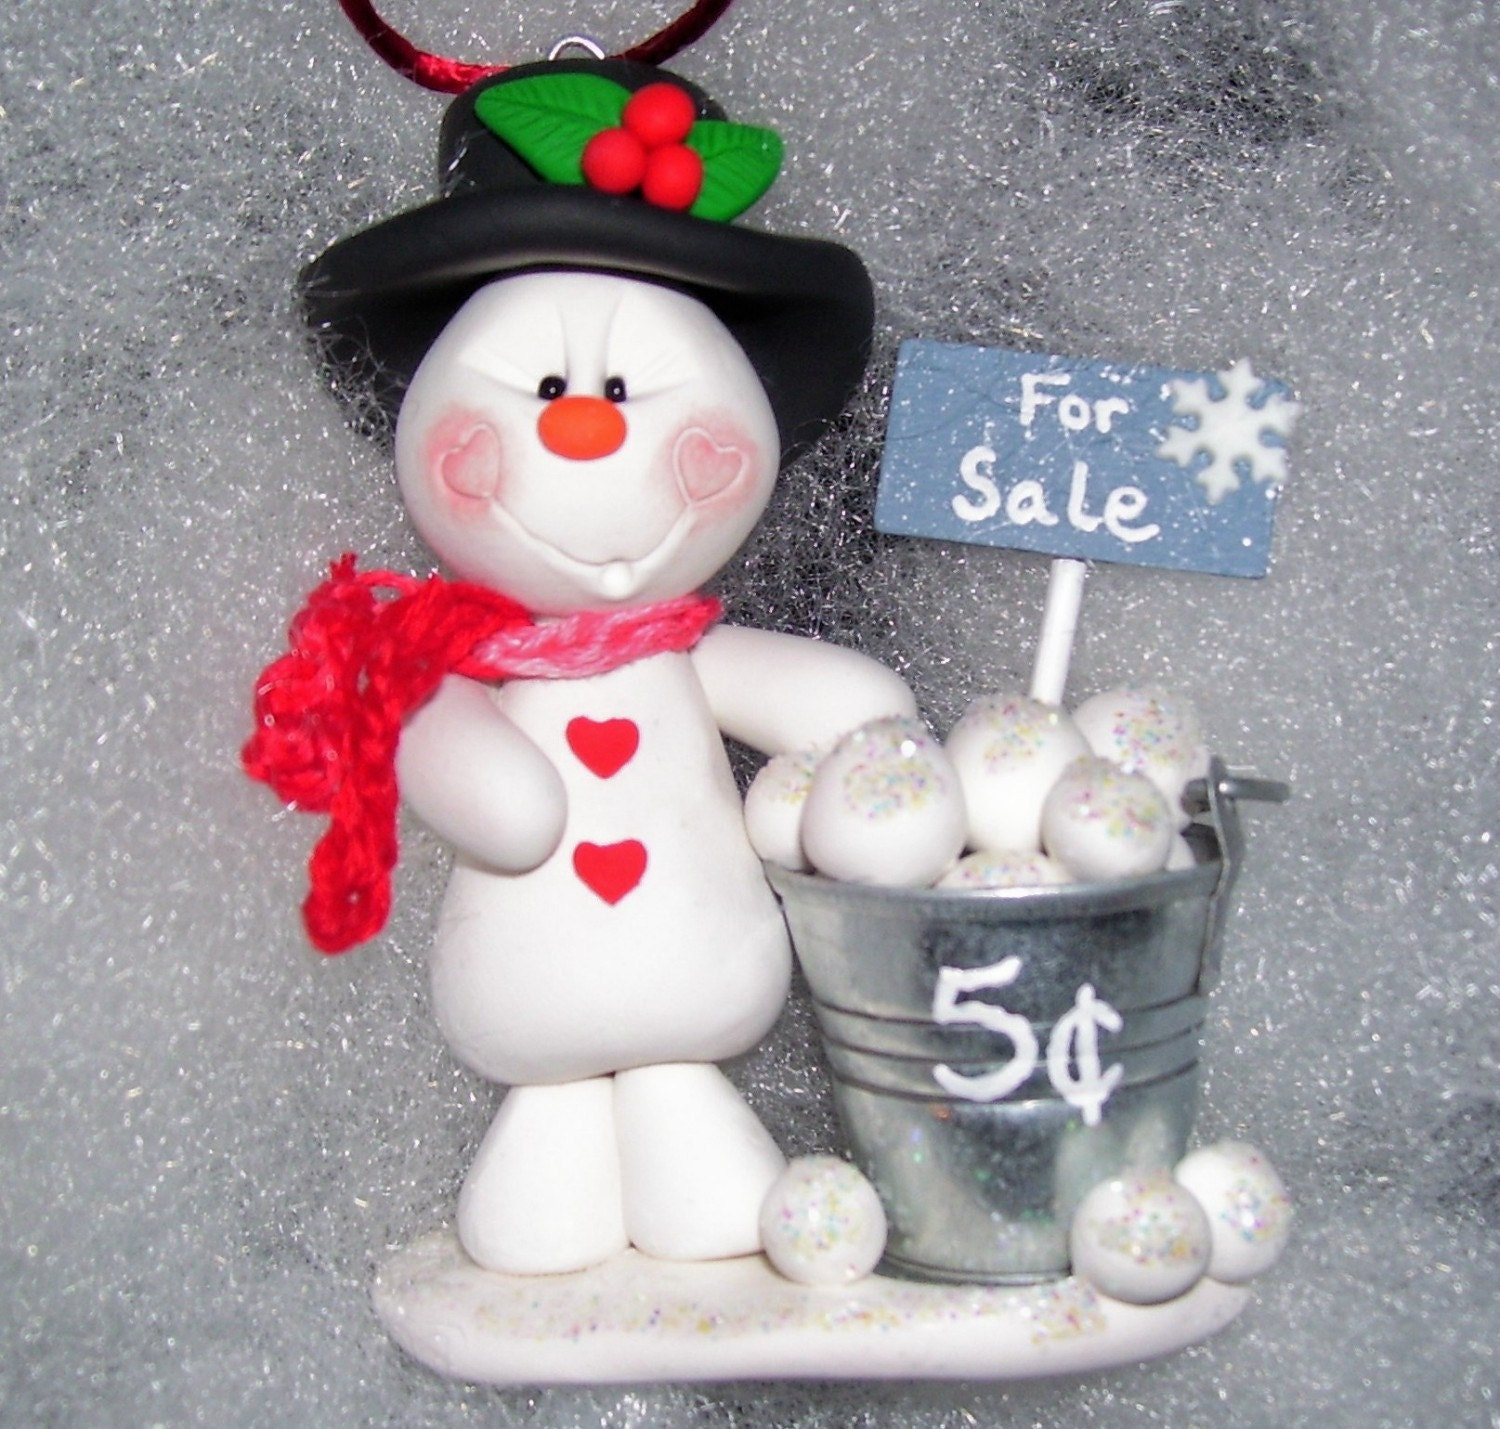 Snowballs For Sale Polymer Clay Snowman Christmas Ornament